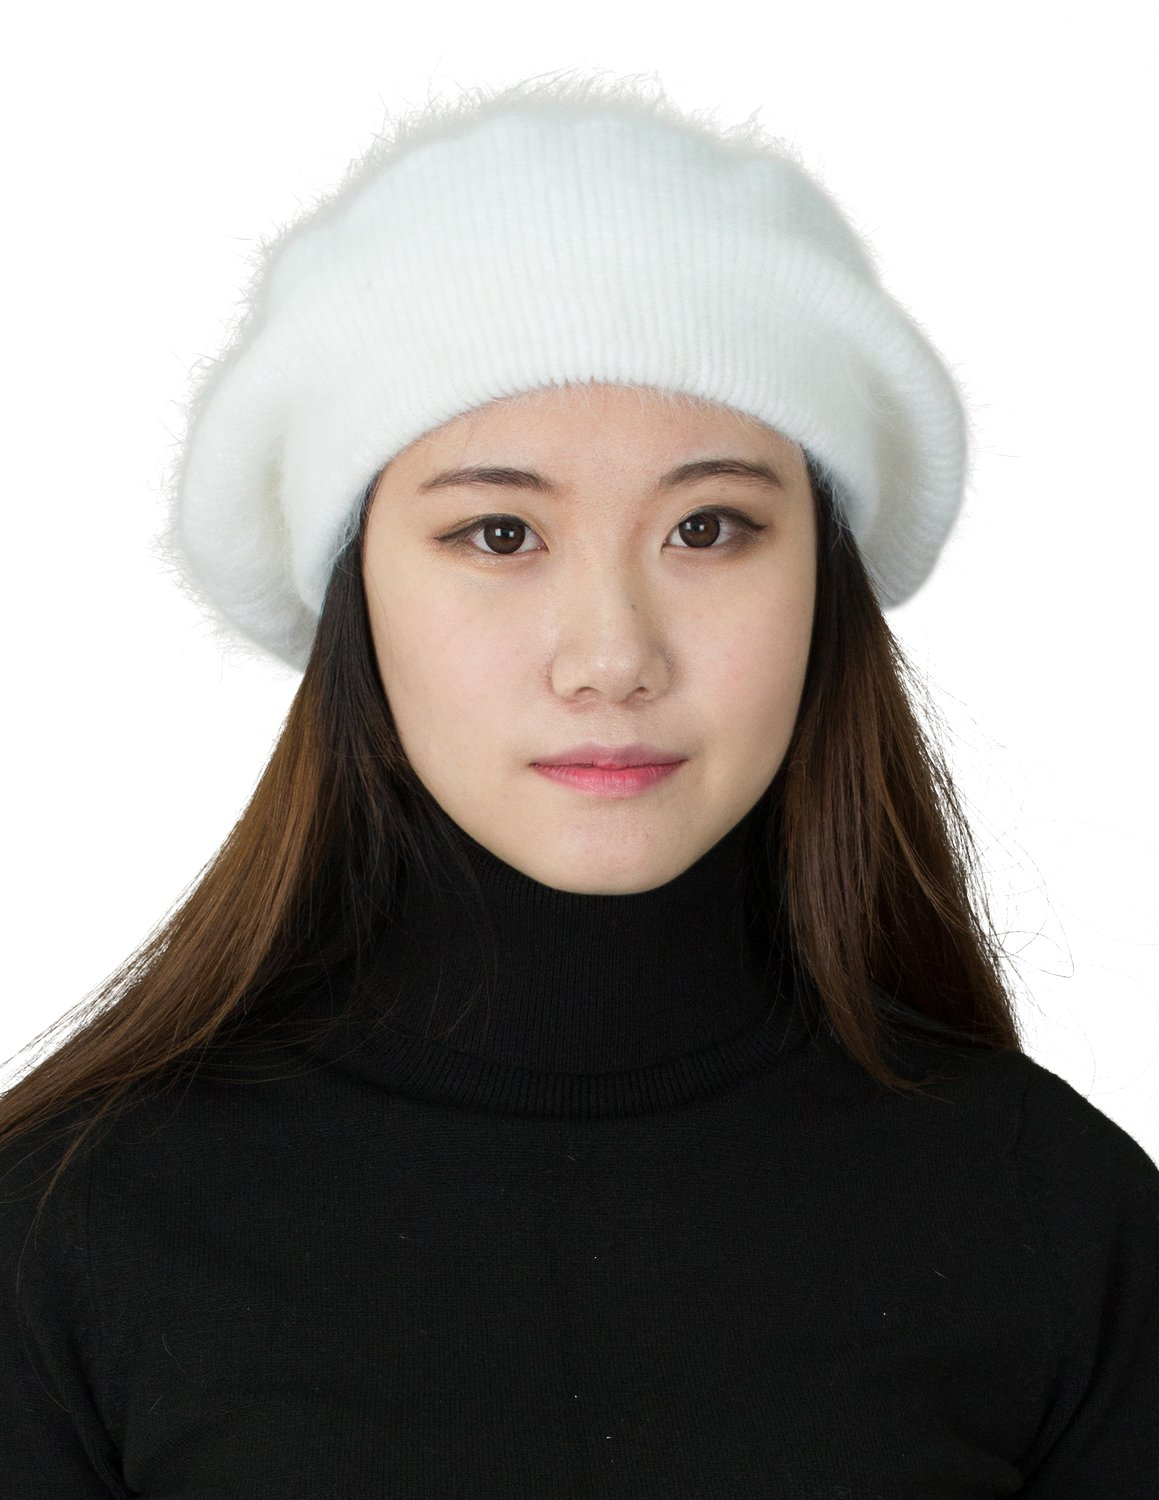 CapHouse Fine Ribbed Womens Angora Knit Winter Beanie Hat,Cream by CapHouse (Image #3)